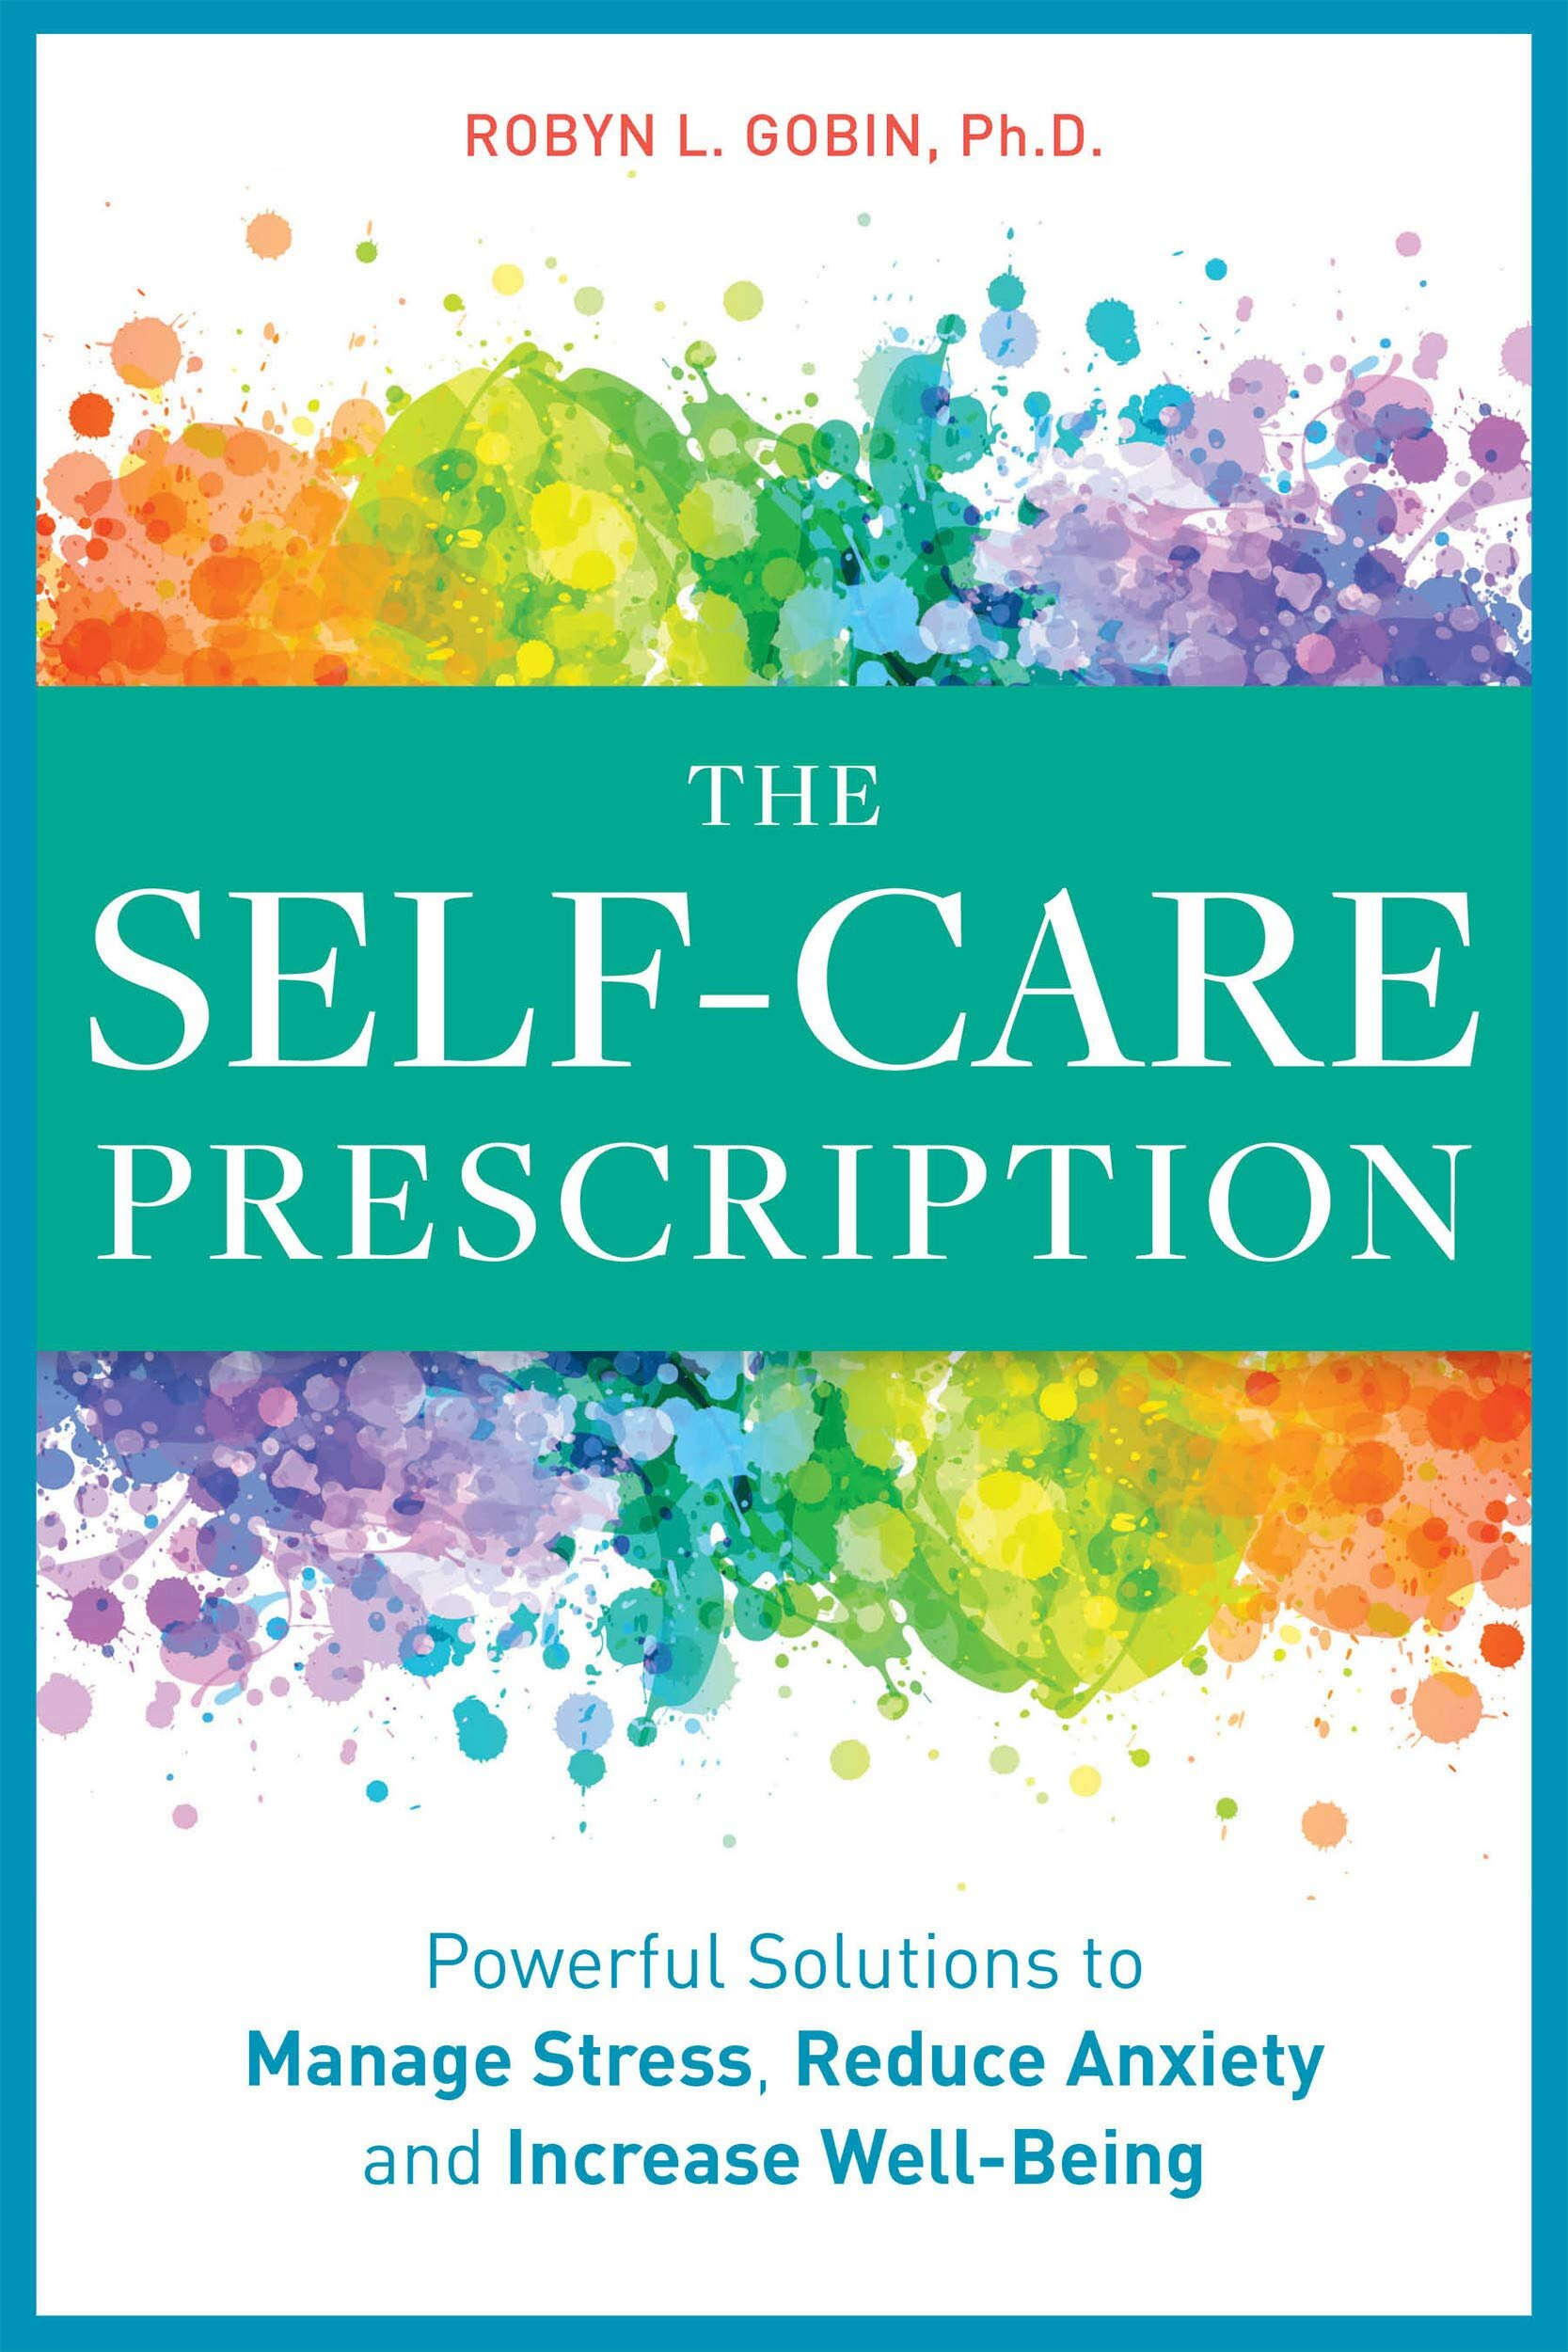 The Self-Care Prescription Book.jpg